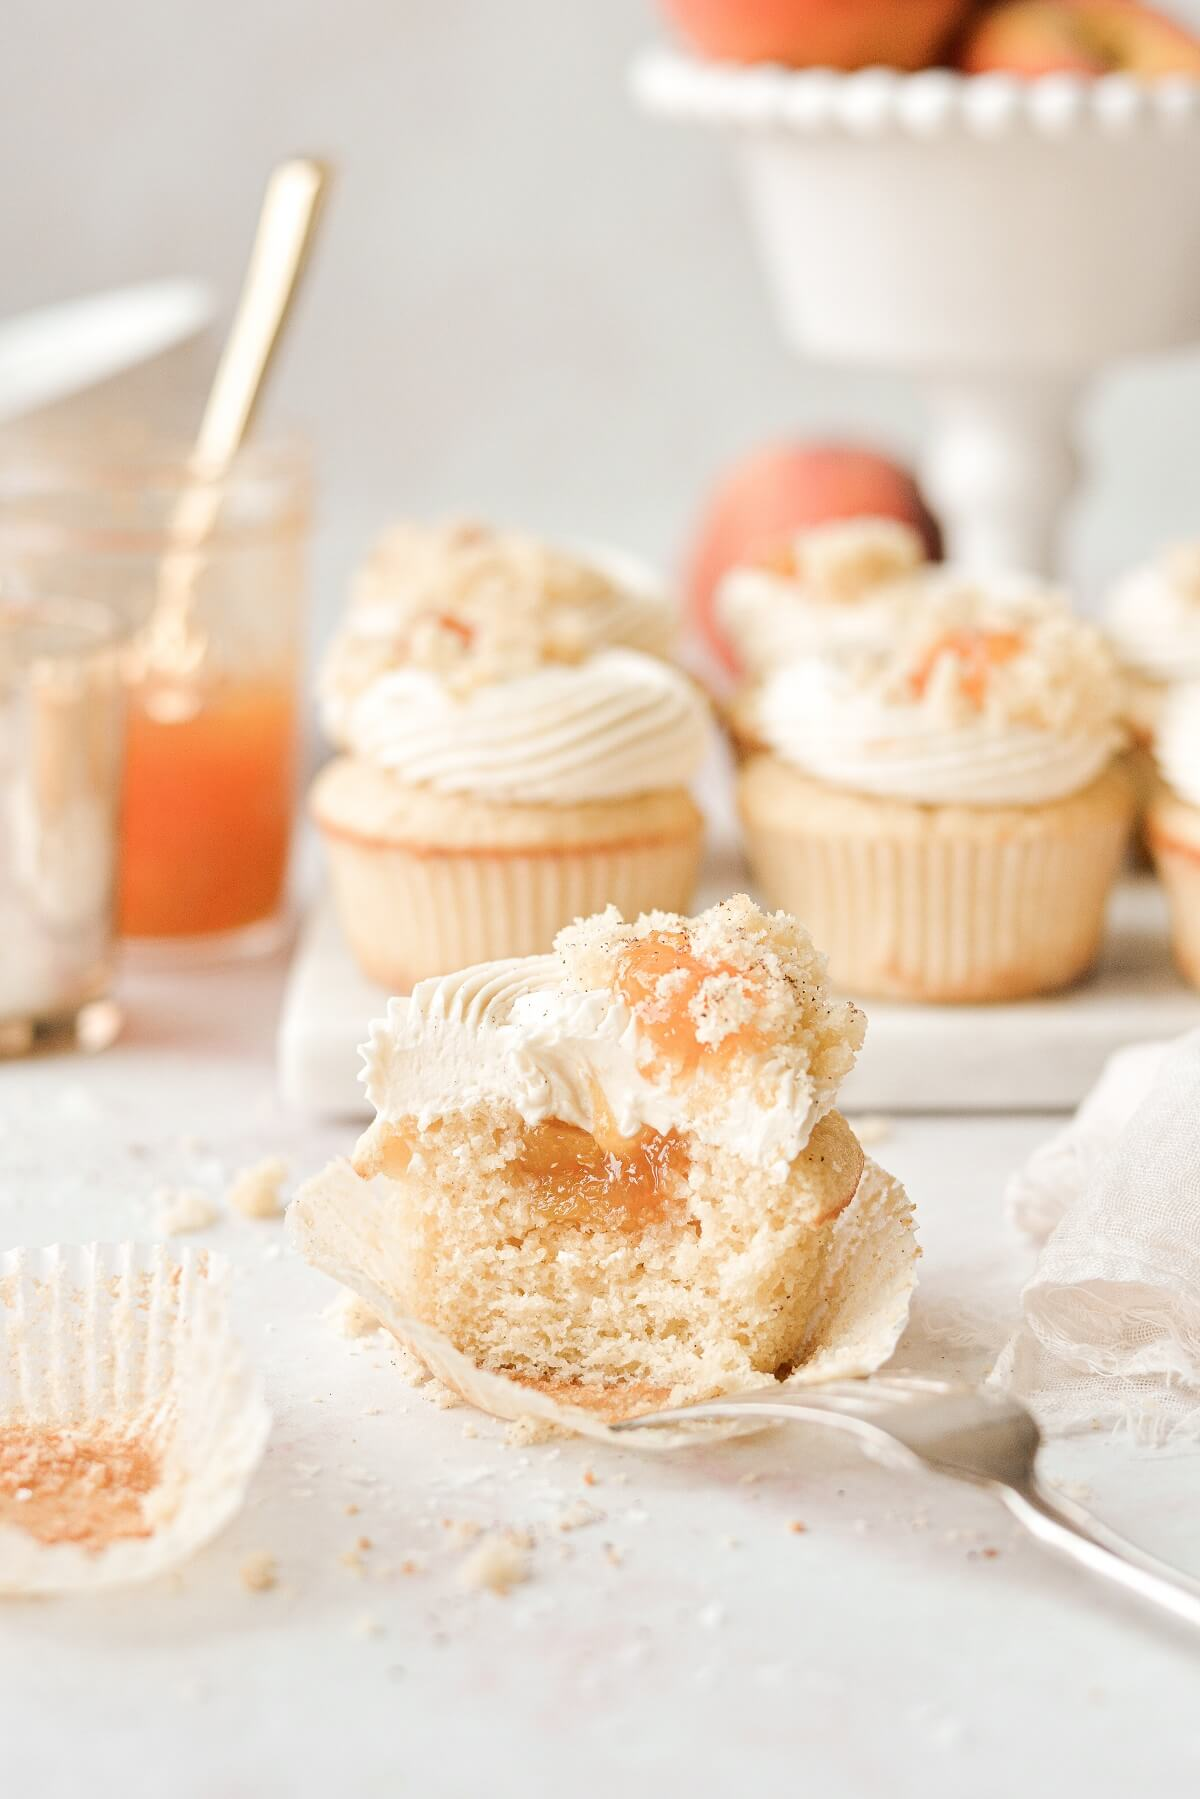 A peach cupcake with one bite taken.